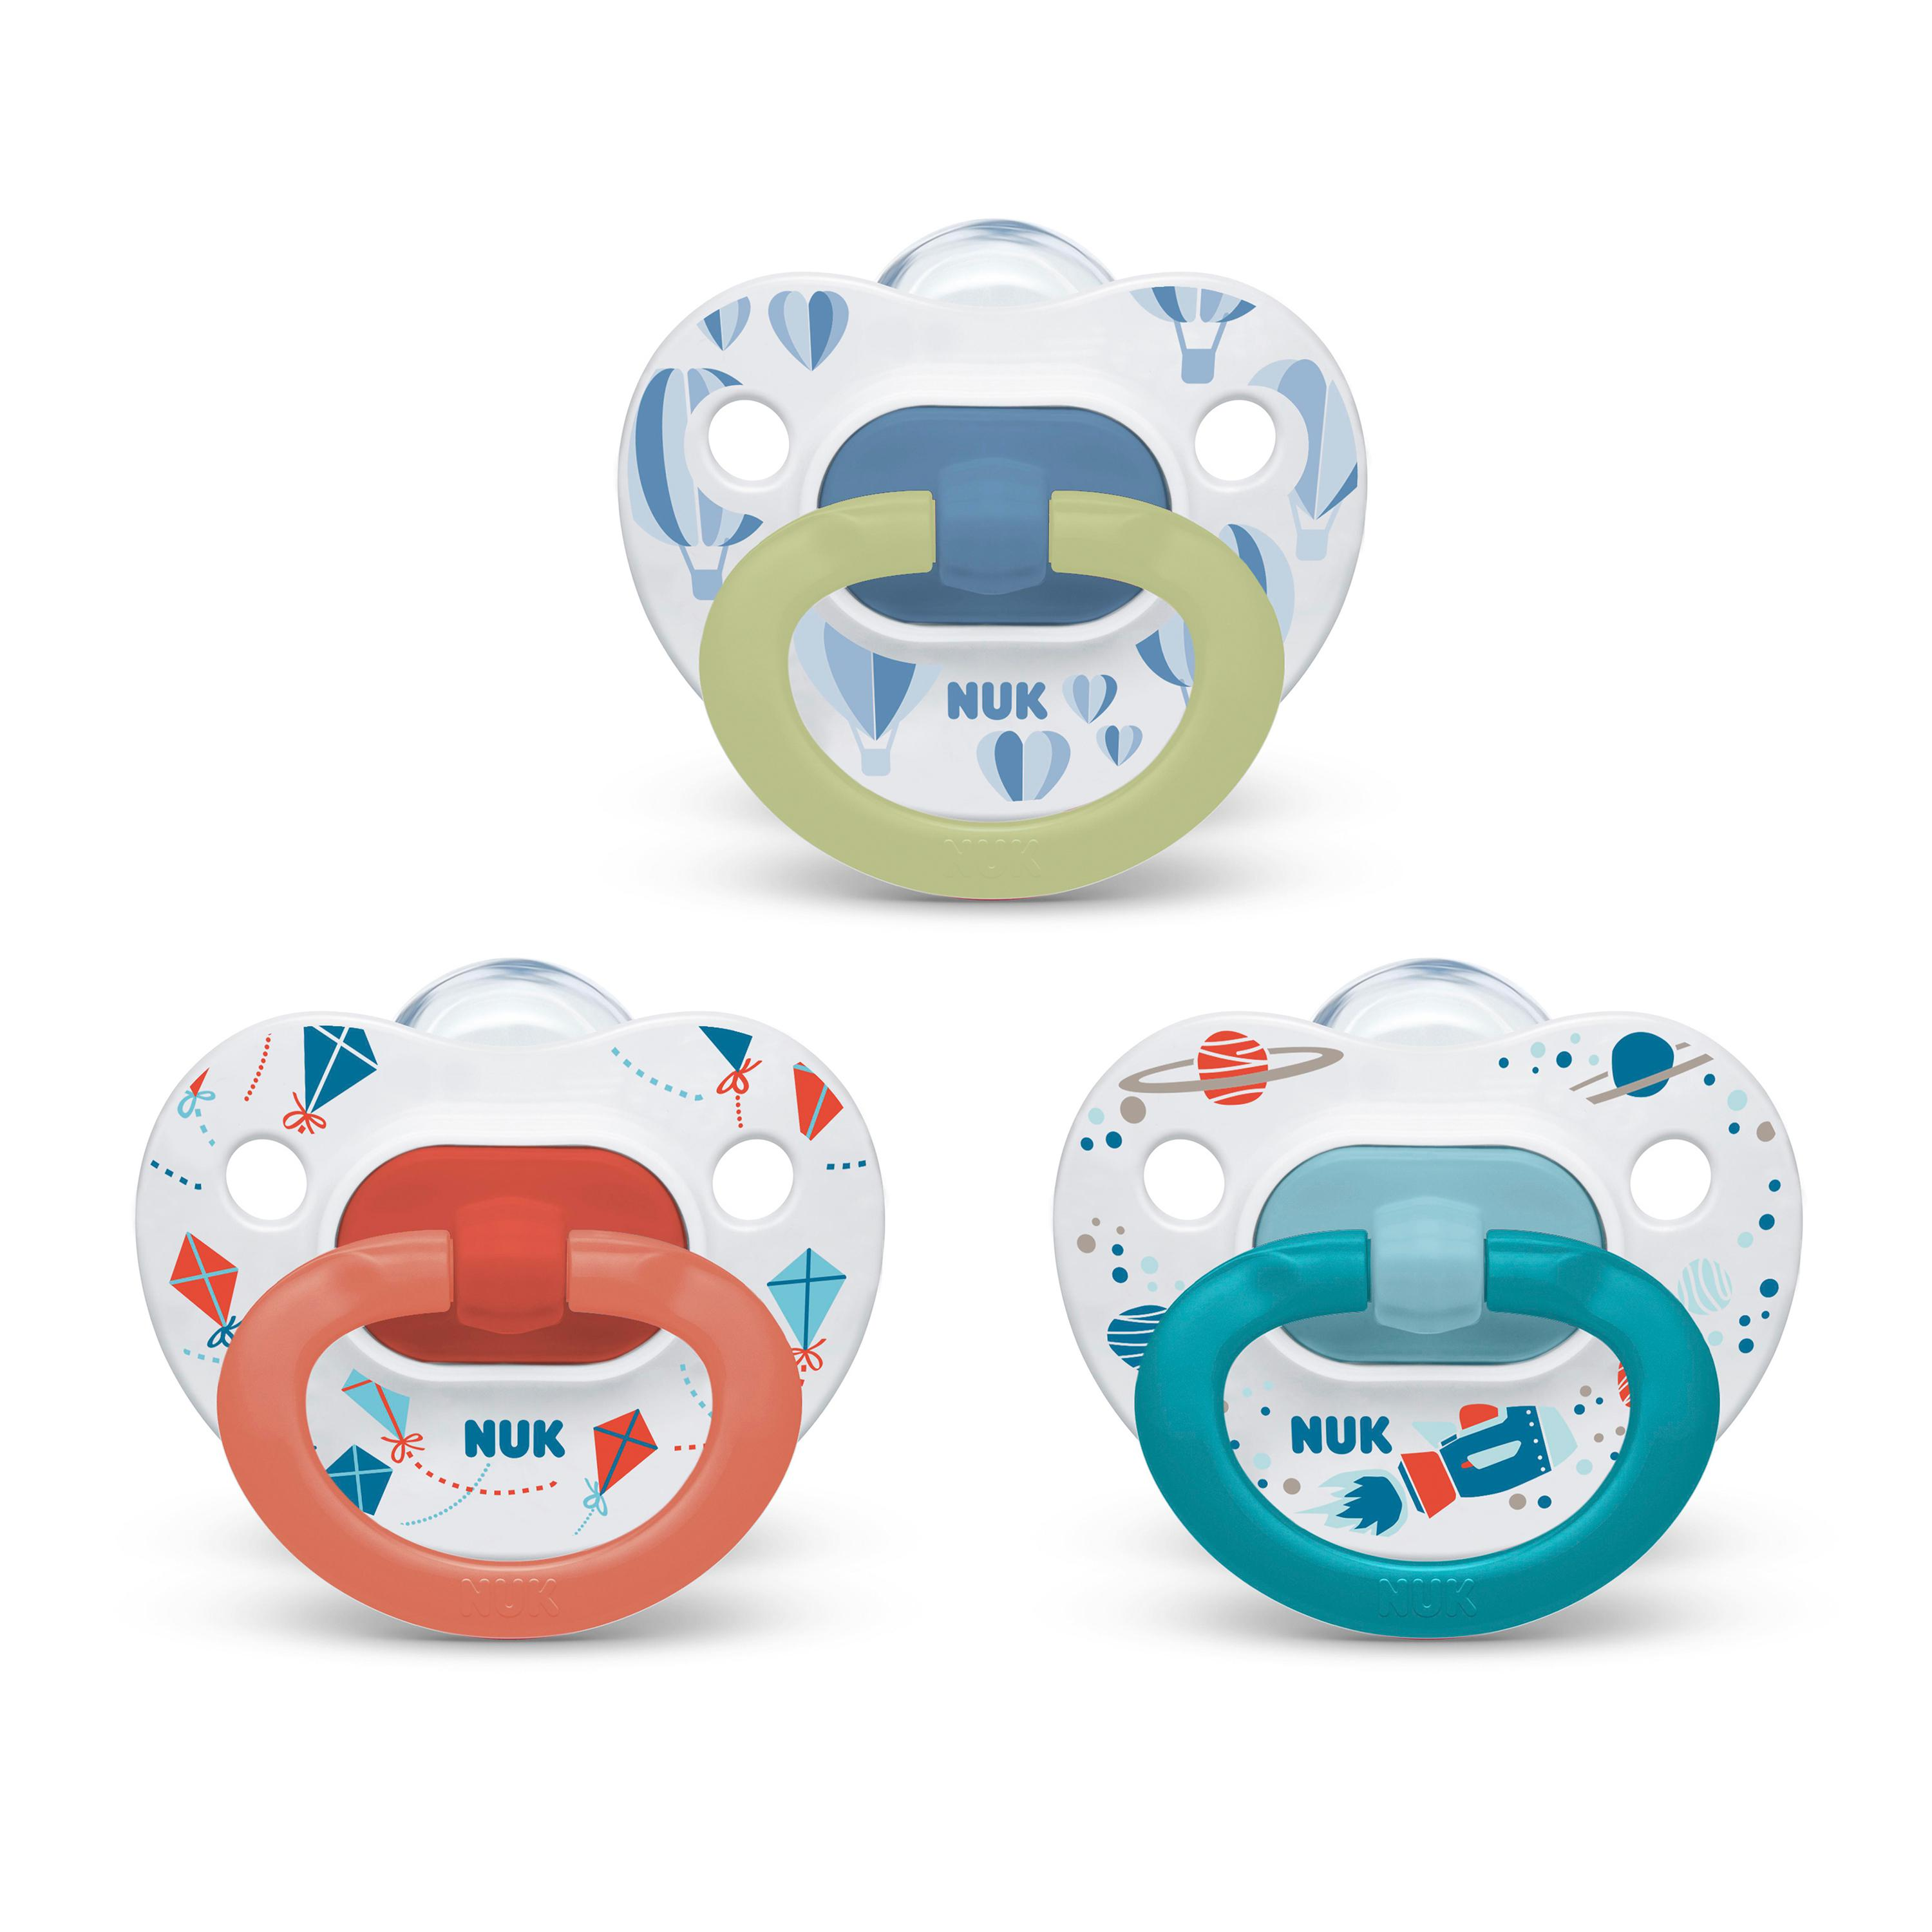 NUK® Orthodontic Pacifier Value Pack, 6-18 Months, 3-Pack Product Image 1 of 8